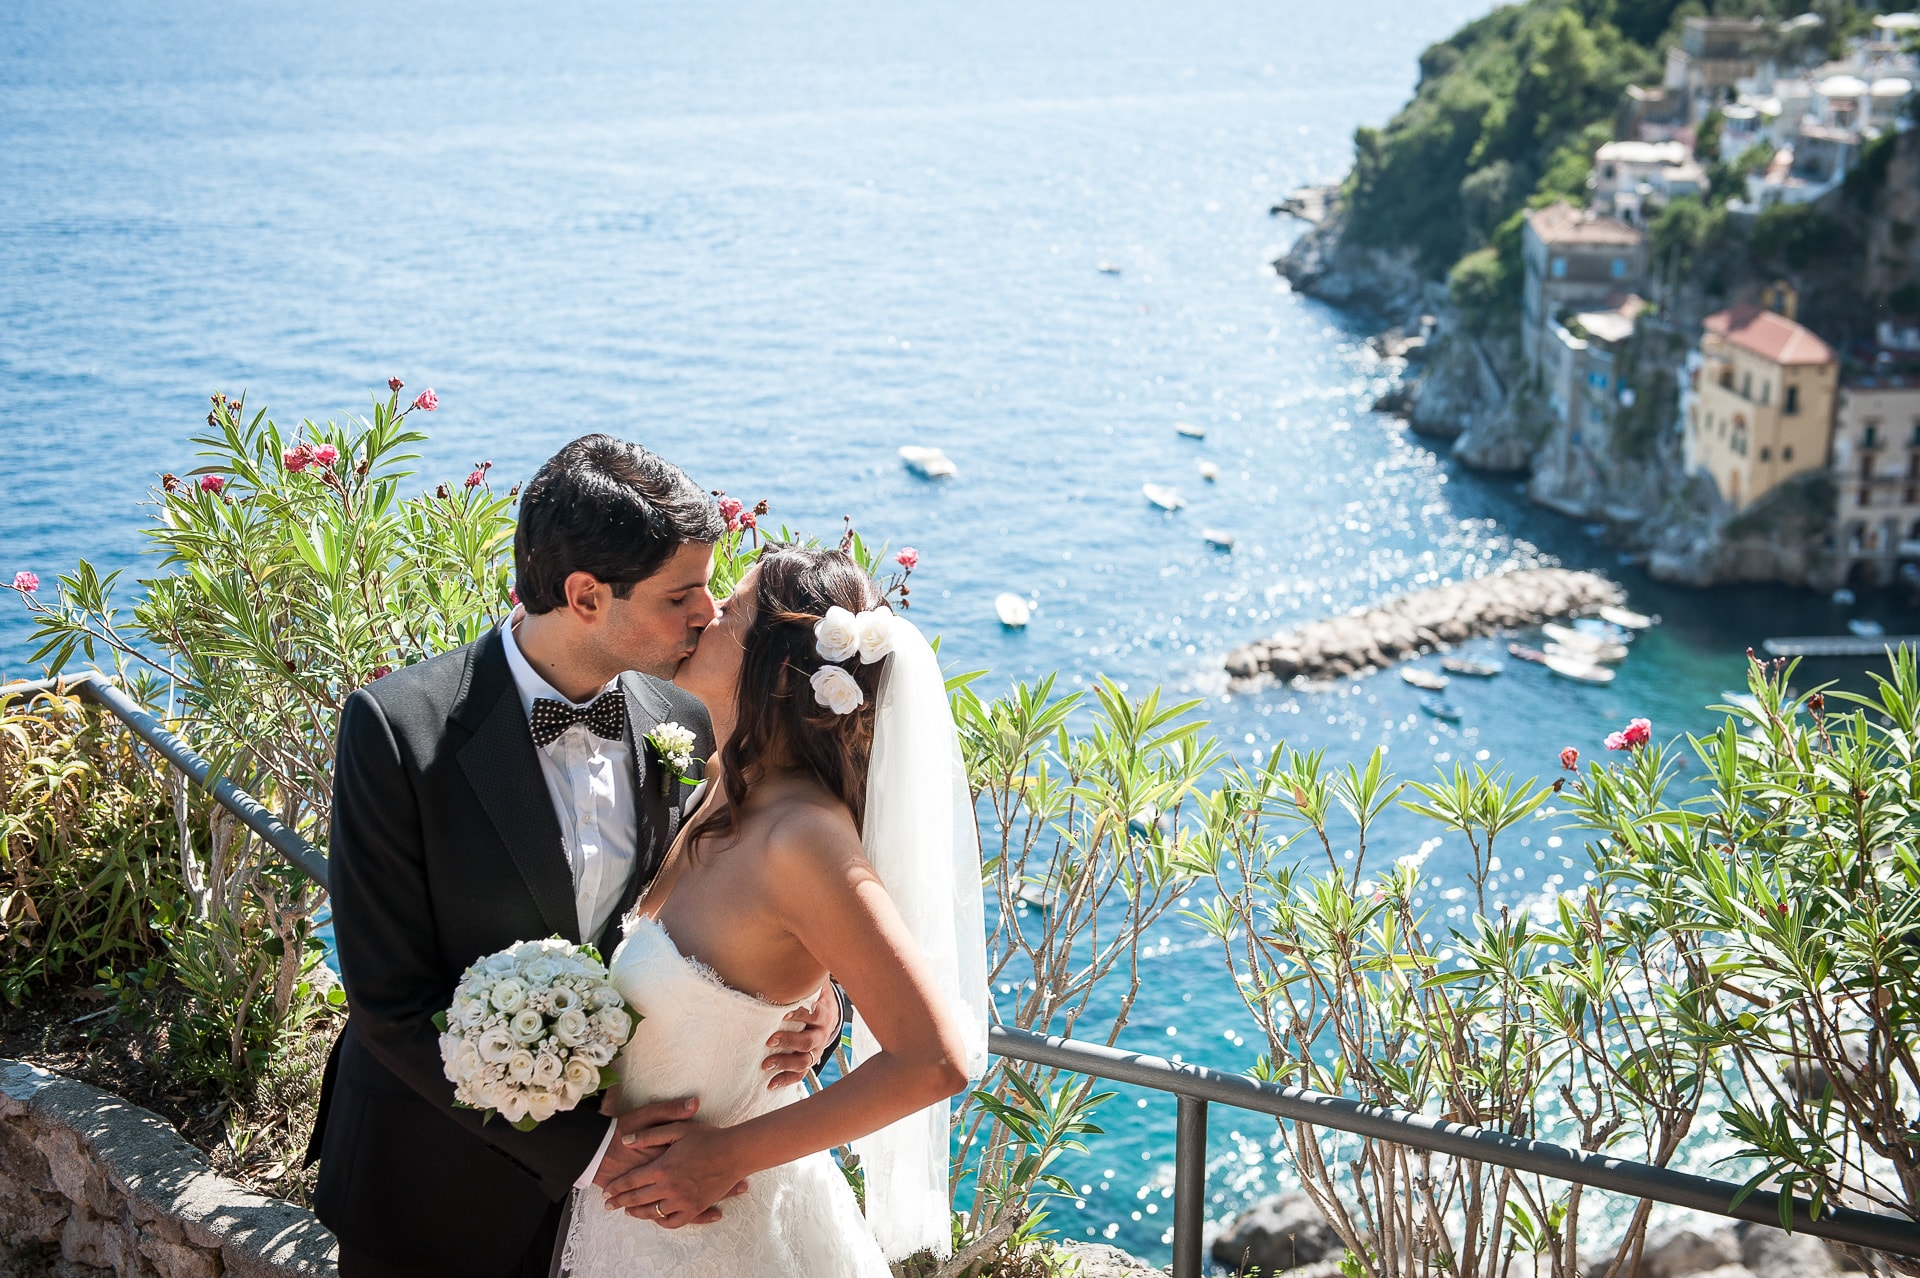 Wedding Photo - Il Saraceno, Amalfi | MamaPhoto